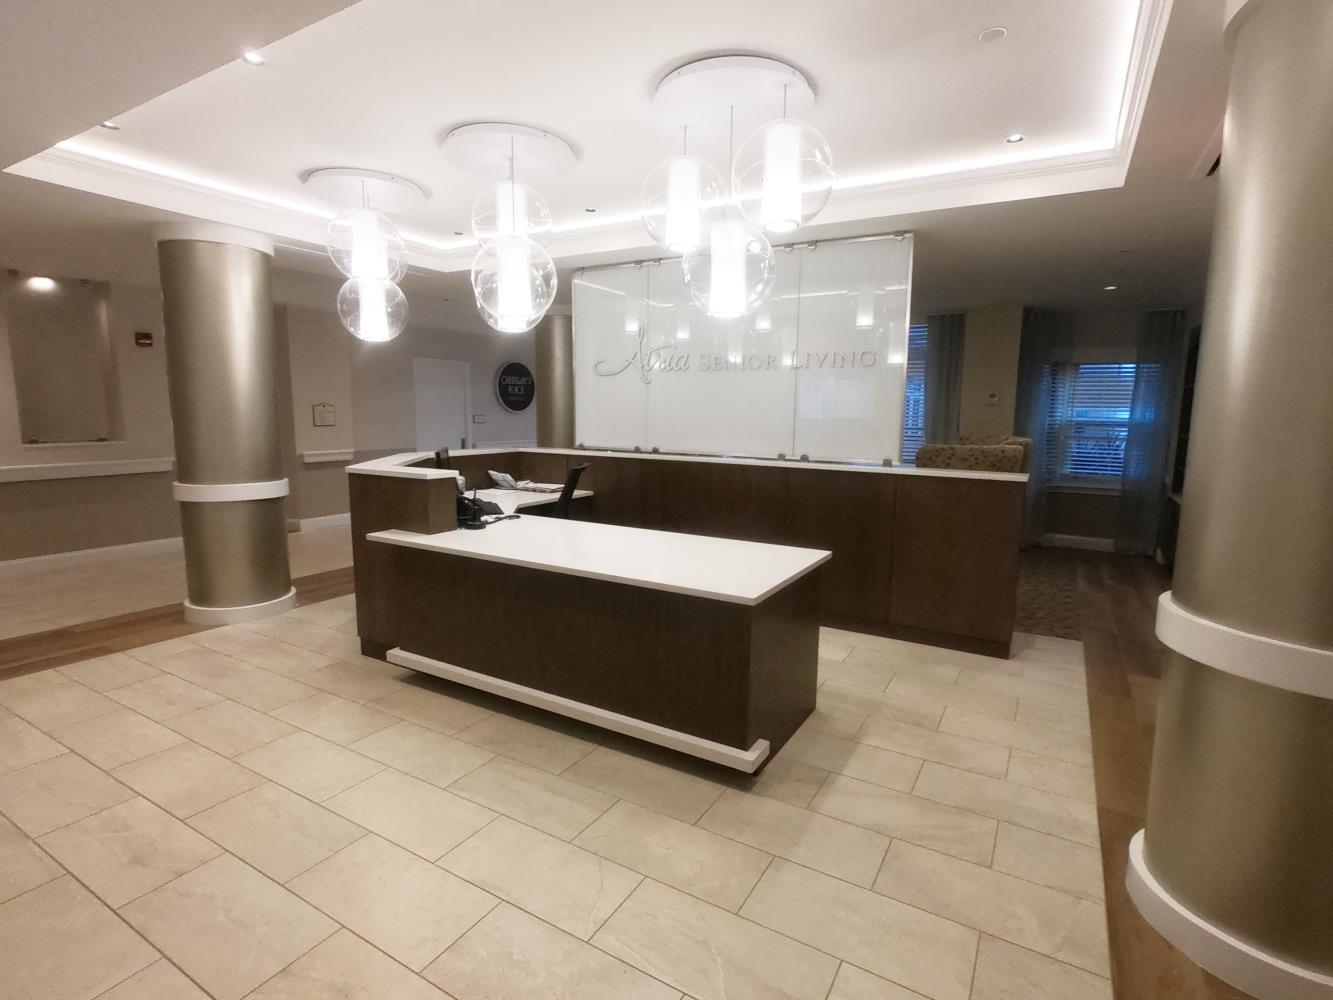 Nassau atria, reception area 1